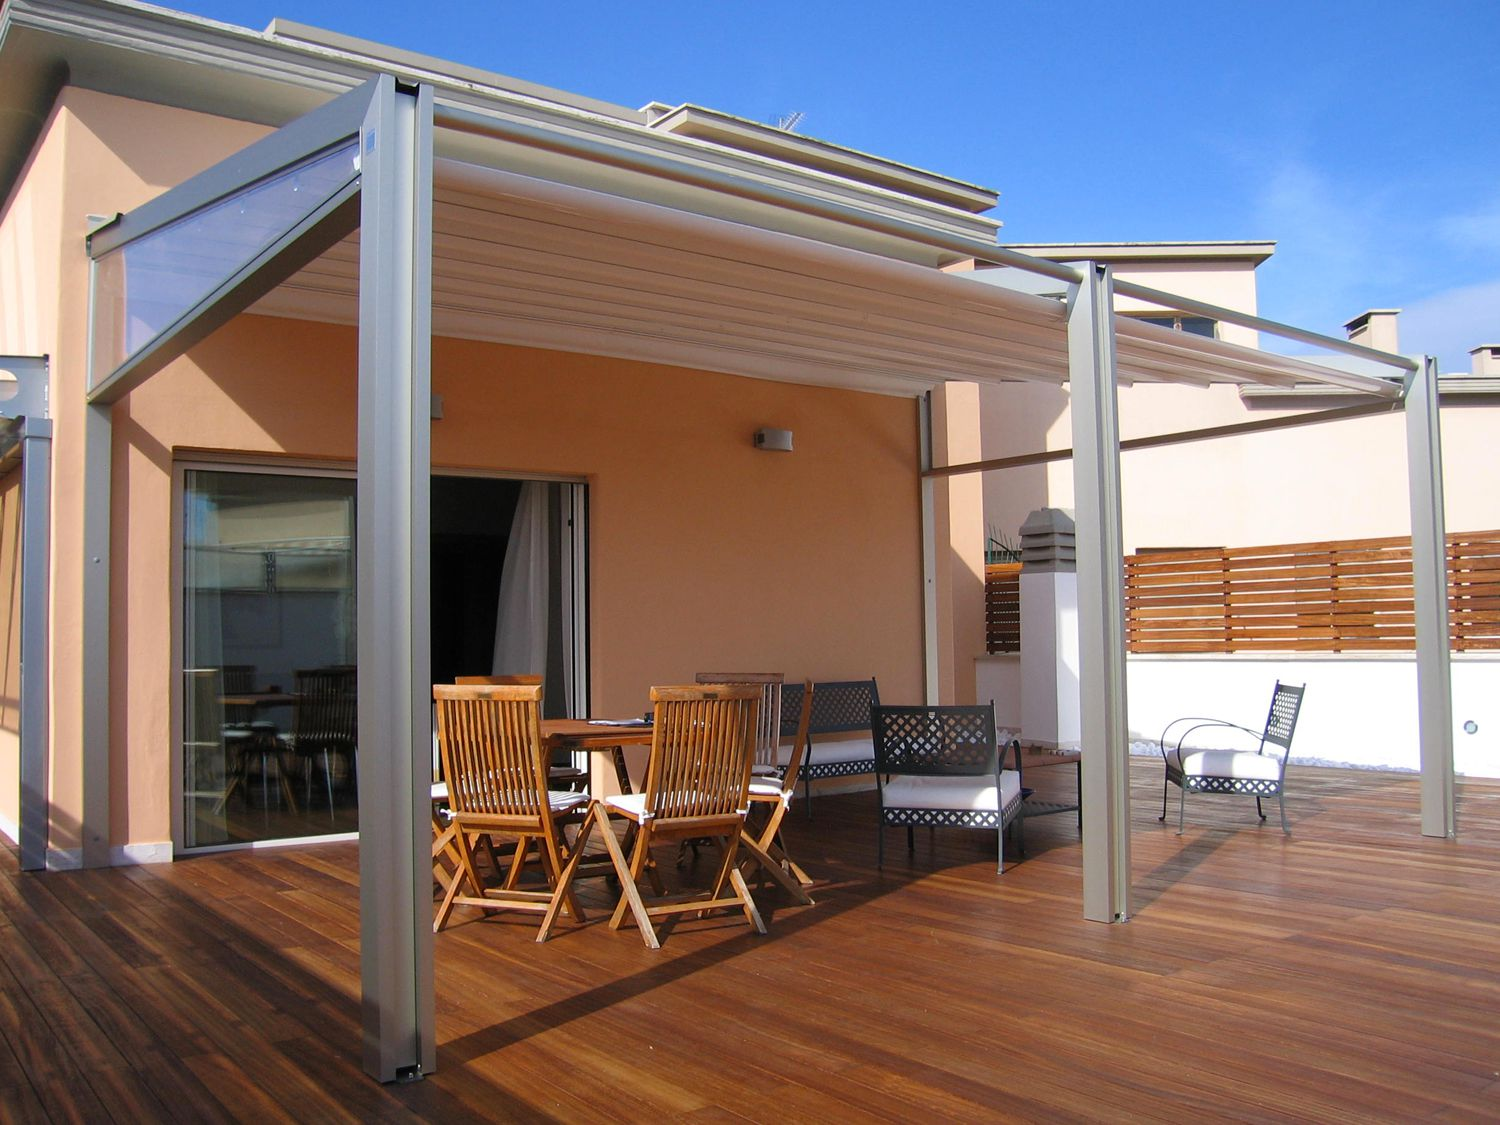 Coverture l 39 ombra in luce for Estructuras para jardin